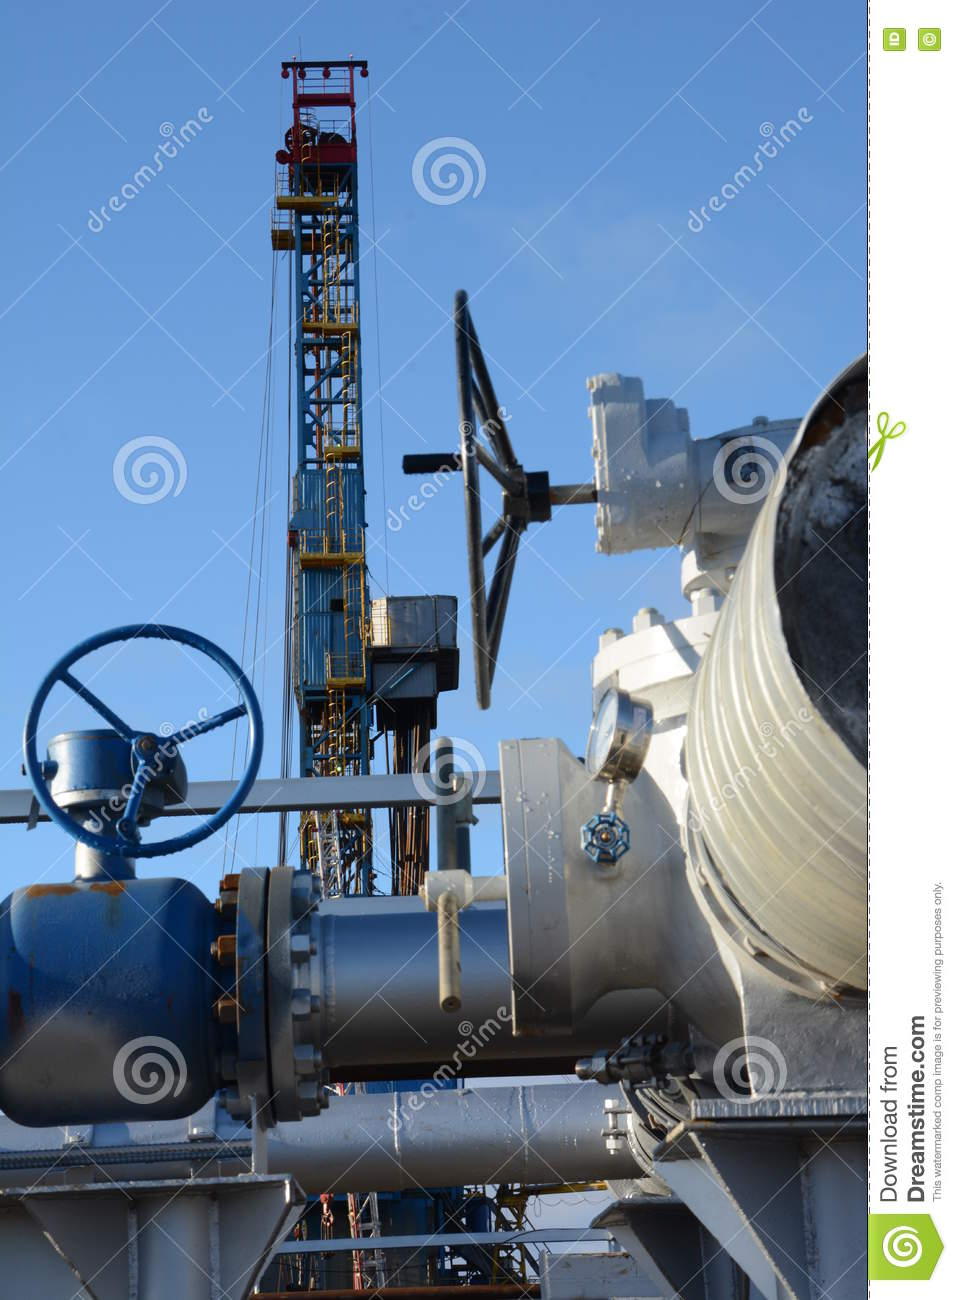 Pipe Fittings On A Background Of The Drilling Rig Stock Image